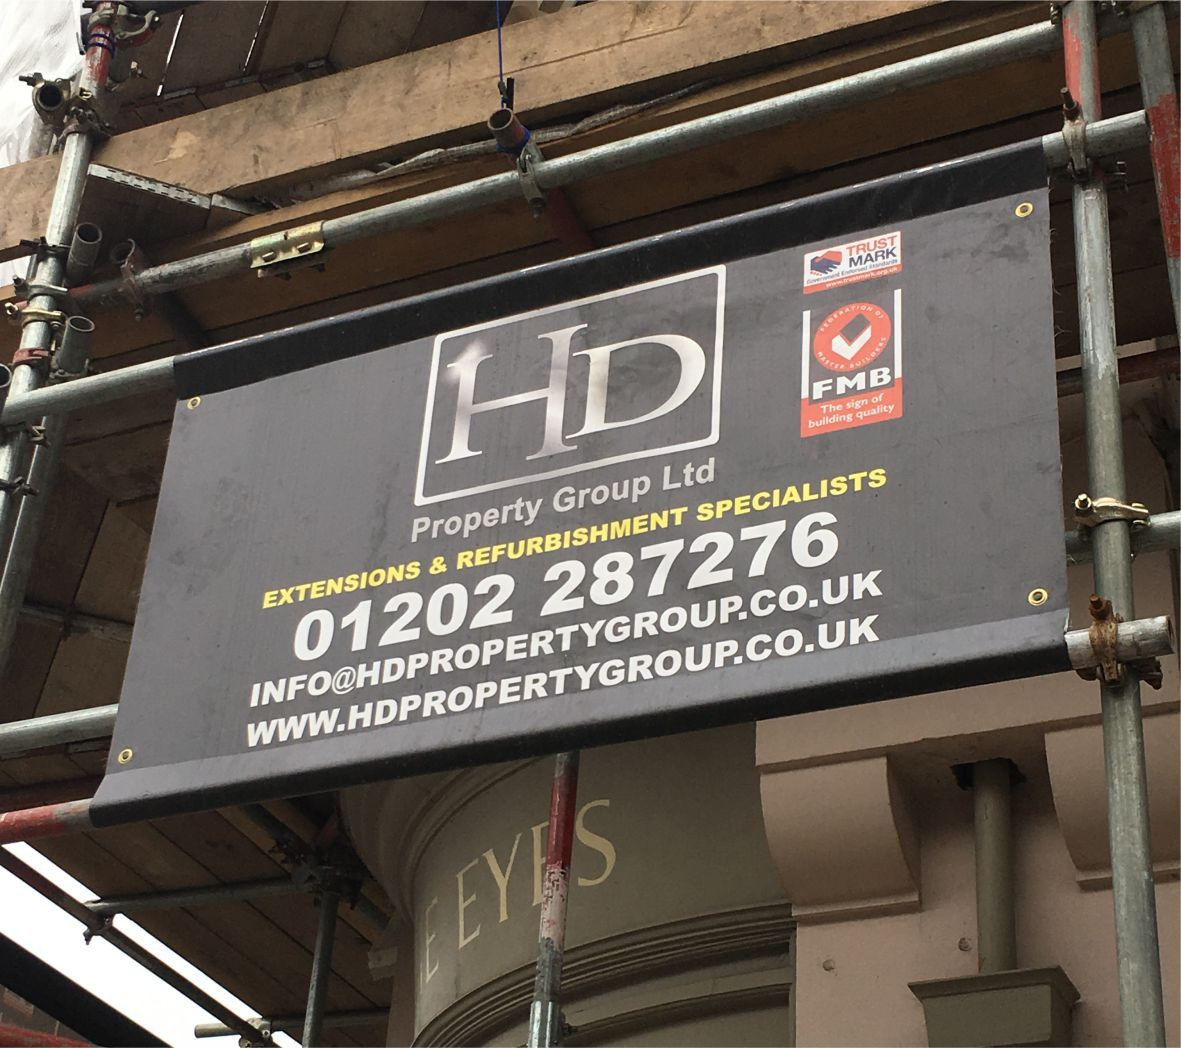 Scaffolding Banners image